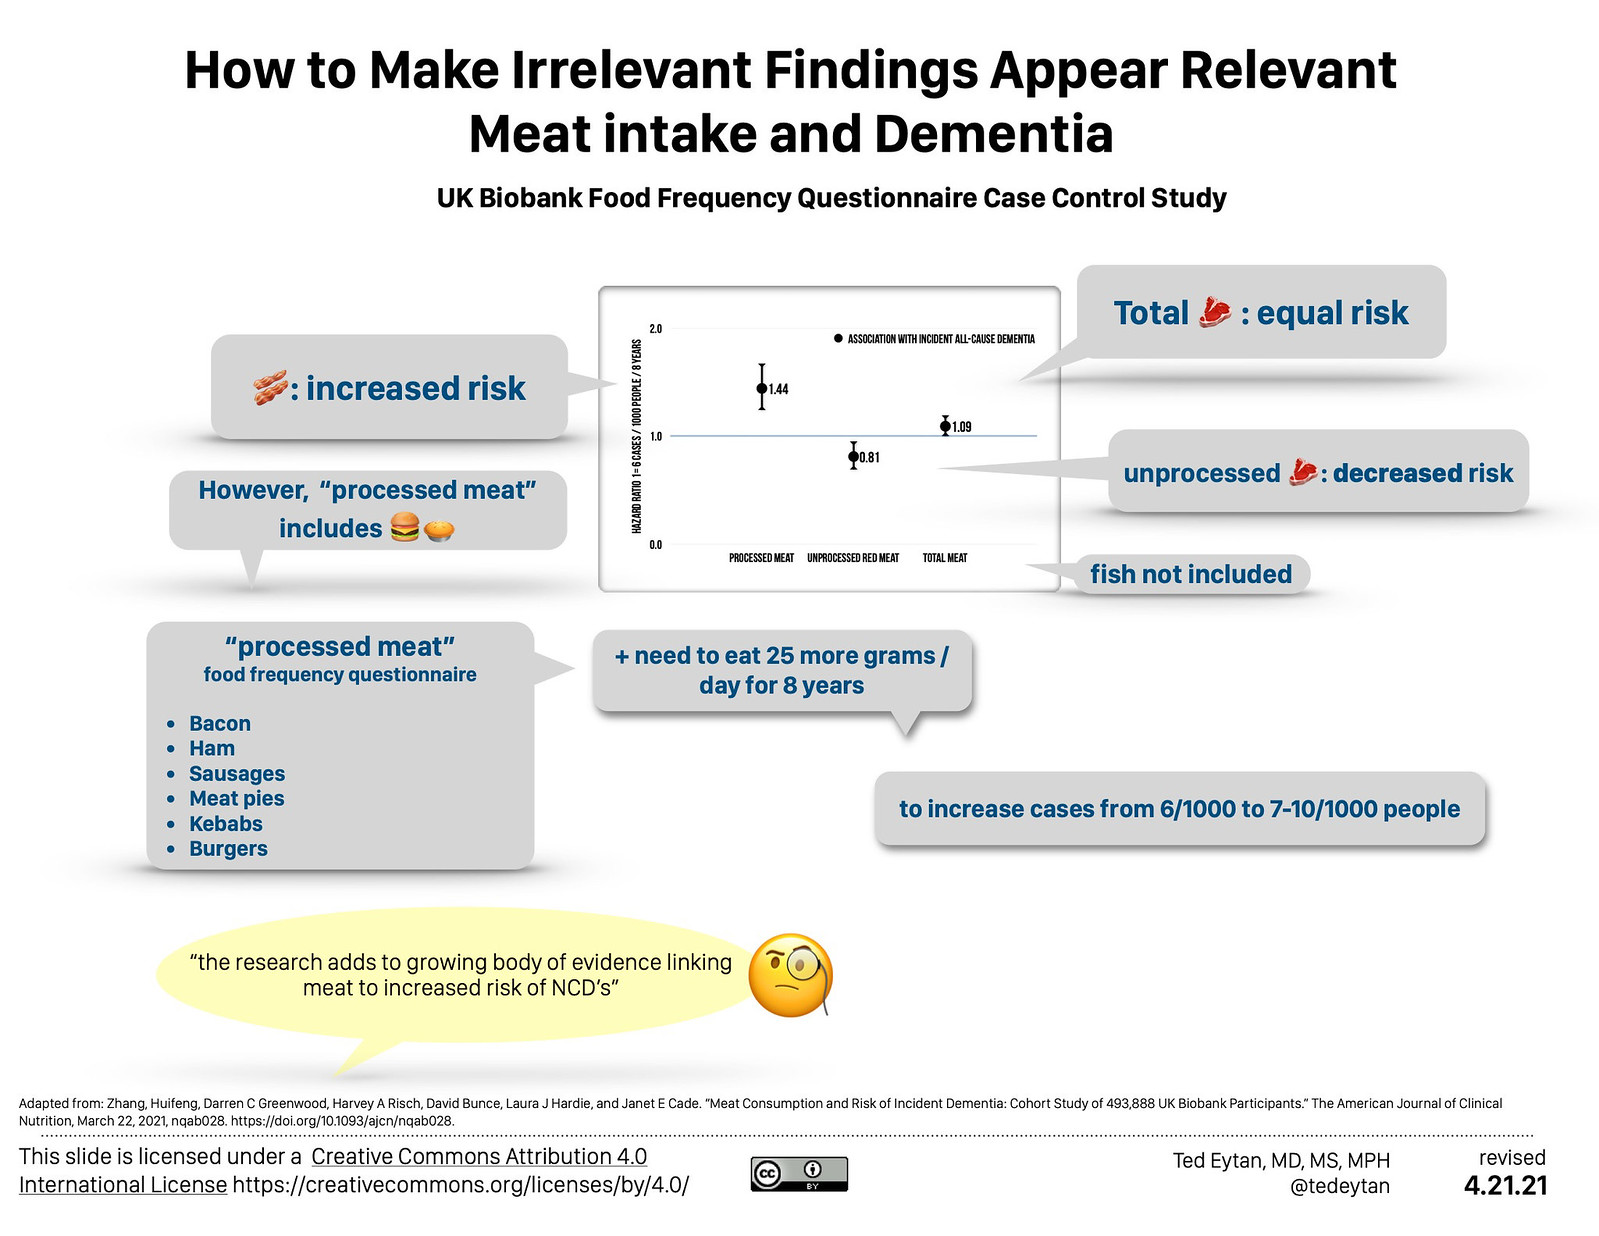 Just Read: How to Make Irrelevant Findings Appear Relevant: Meat intake and Dementia